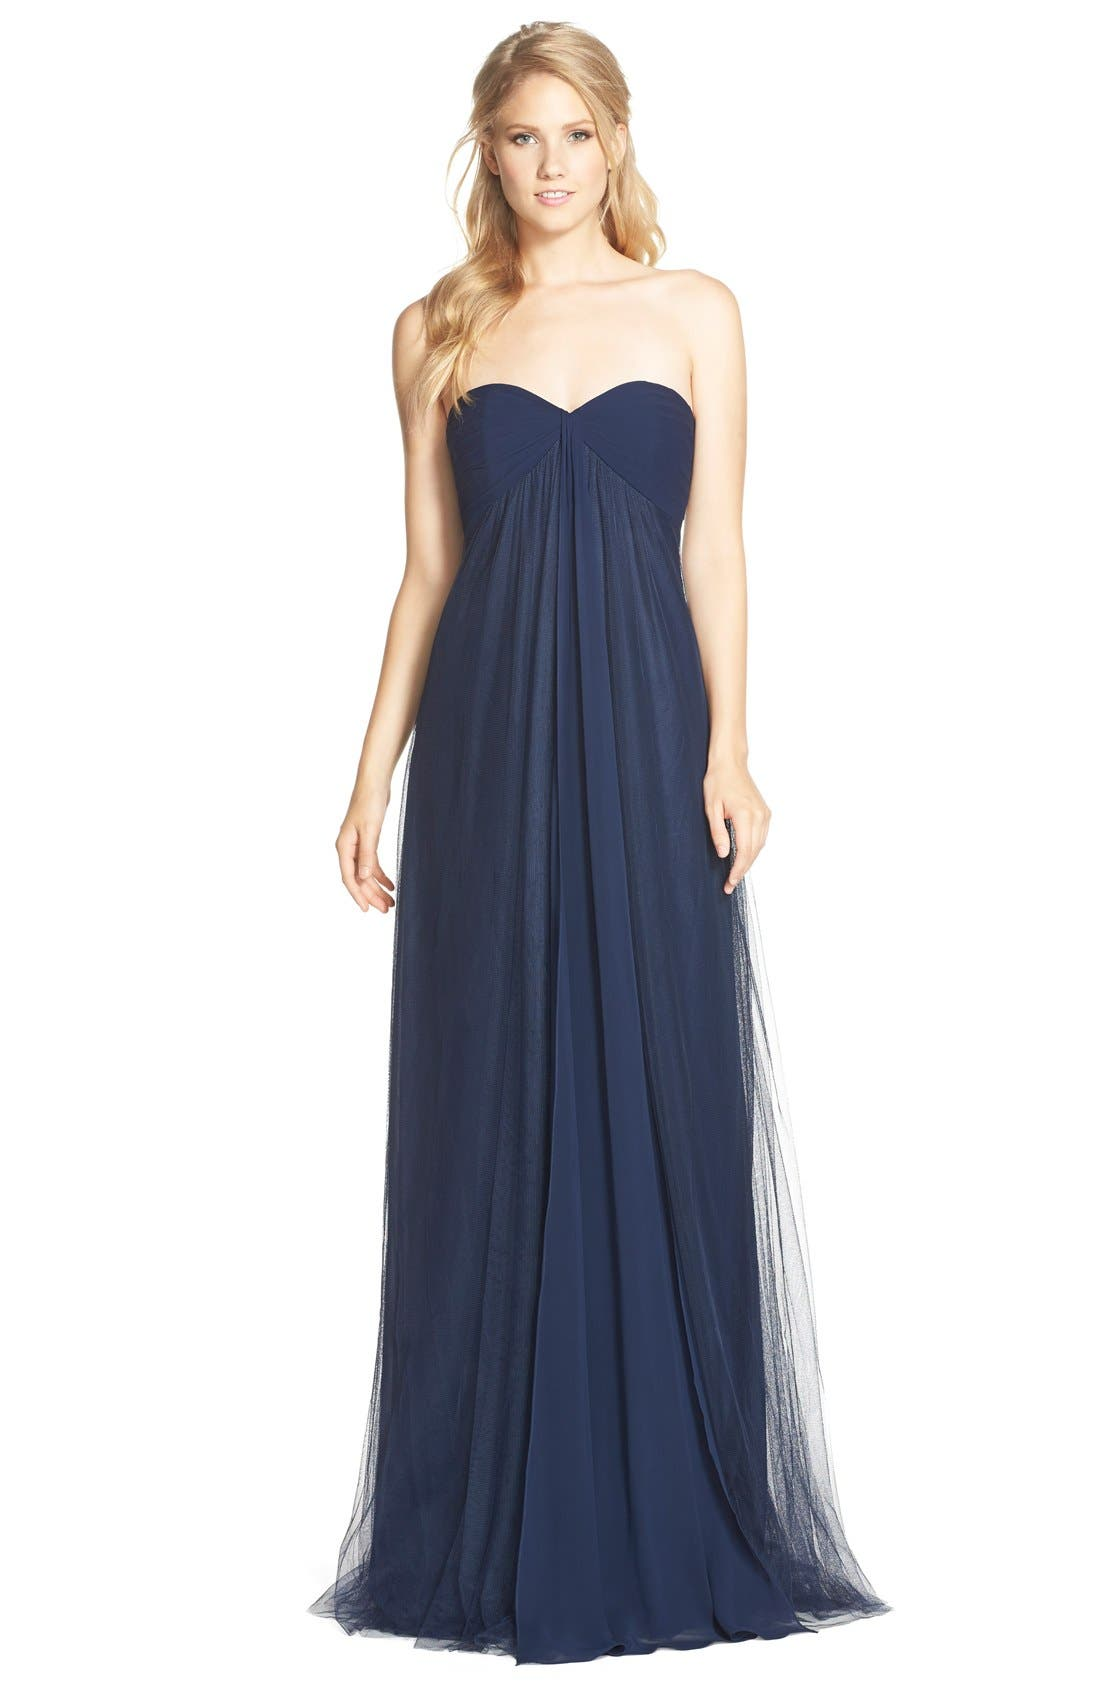 Alternate Image 1 Selected - Monique Lhuillier Bridesmaids Strapless Tulle & Chiffon Gown